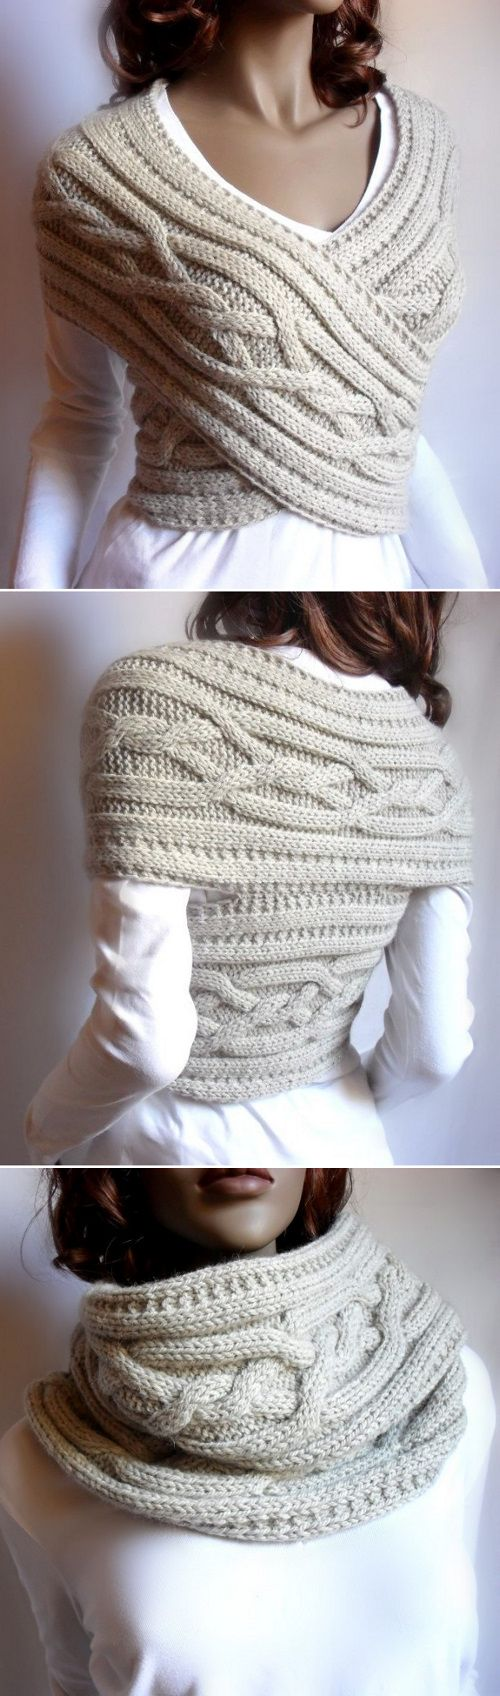 Cable Knit Wrap Vest/Cowl combo ~ knitted one-piece to wear criss-cross as a sweater vest, or gathered up for a neck warmer ~ €4 for pattern via instant digital download (pdf) | from PillandPattern shop @ Etsy